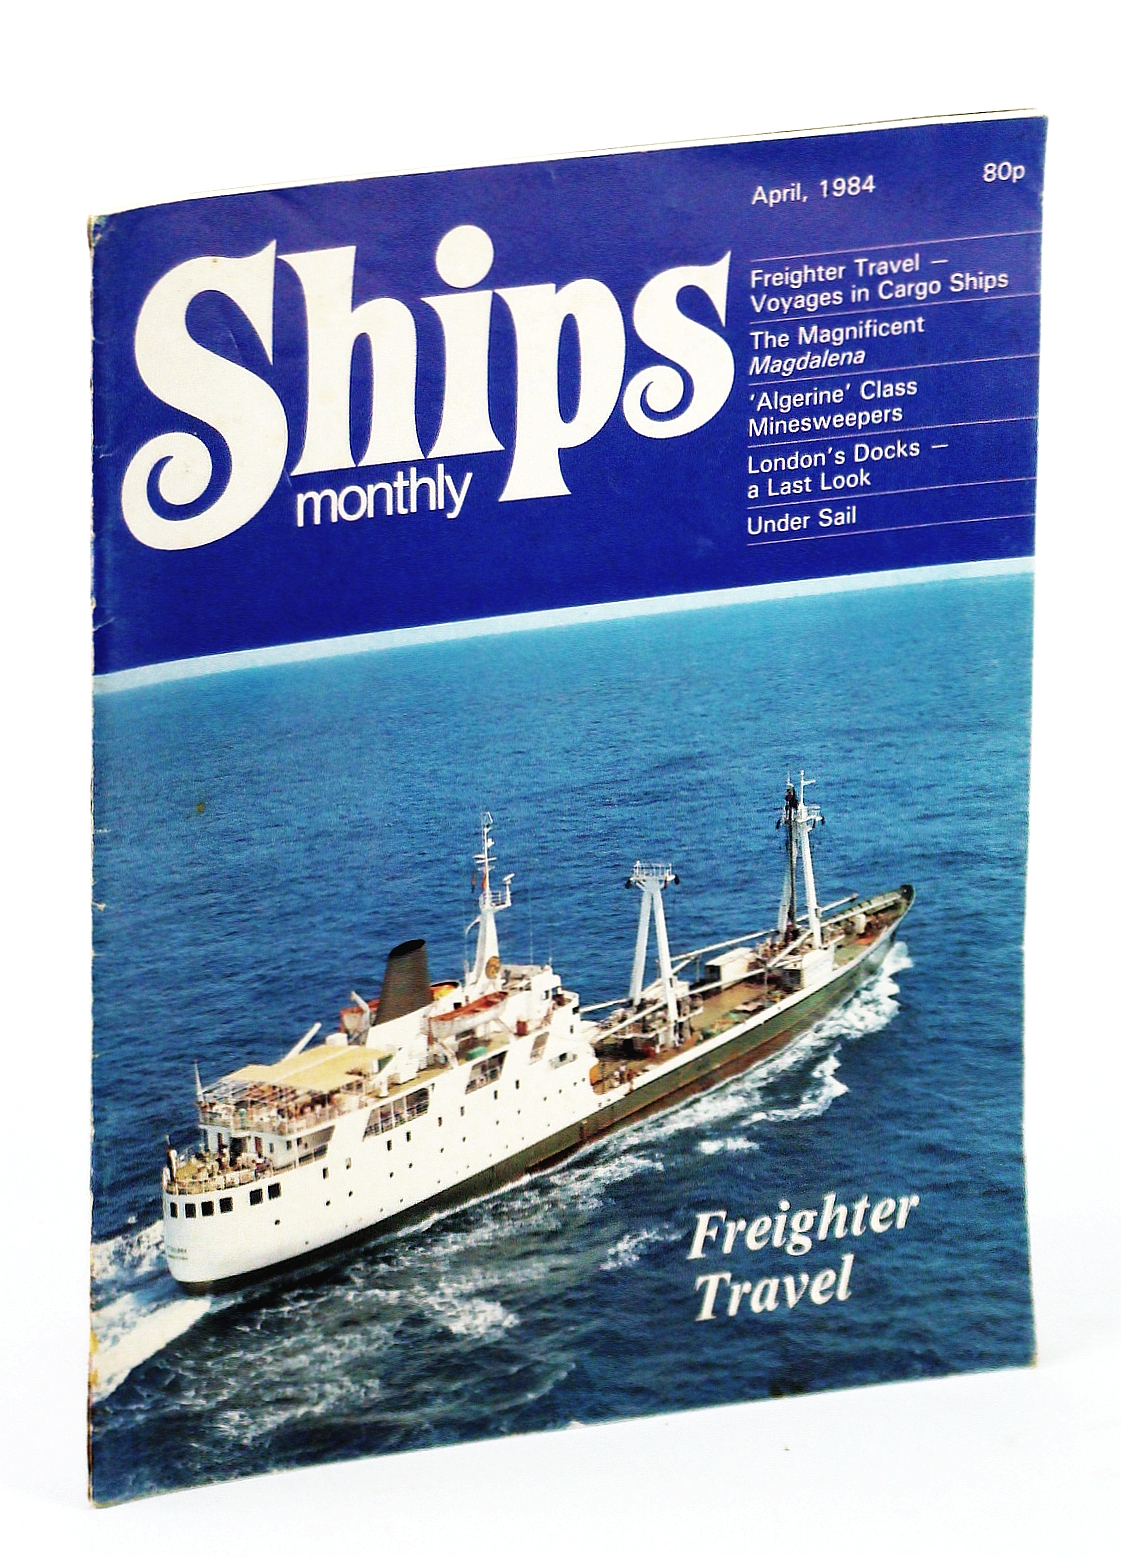 Image for Ships Monthly - The Magazine for Shiplovers Ashore and Afloat, April 1984 - The Magnificent Magdelena